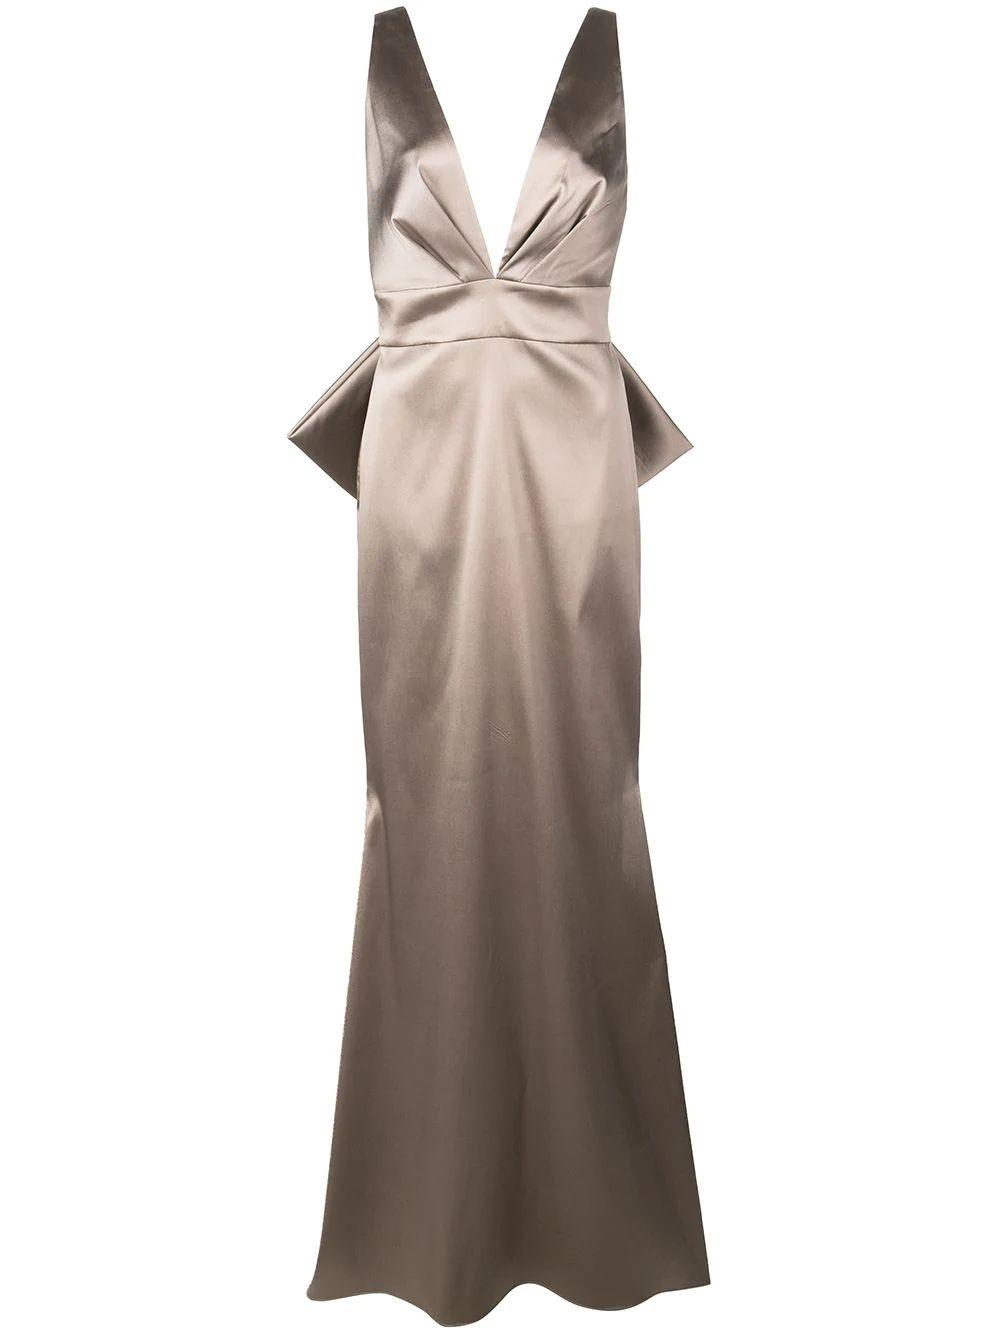 Penelope V- Neck With Bow Back Detail Gown Item # T19G04